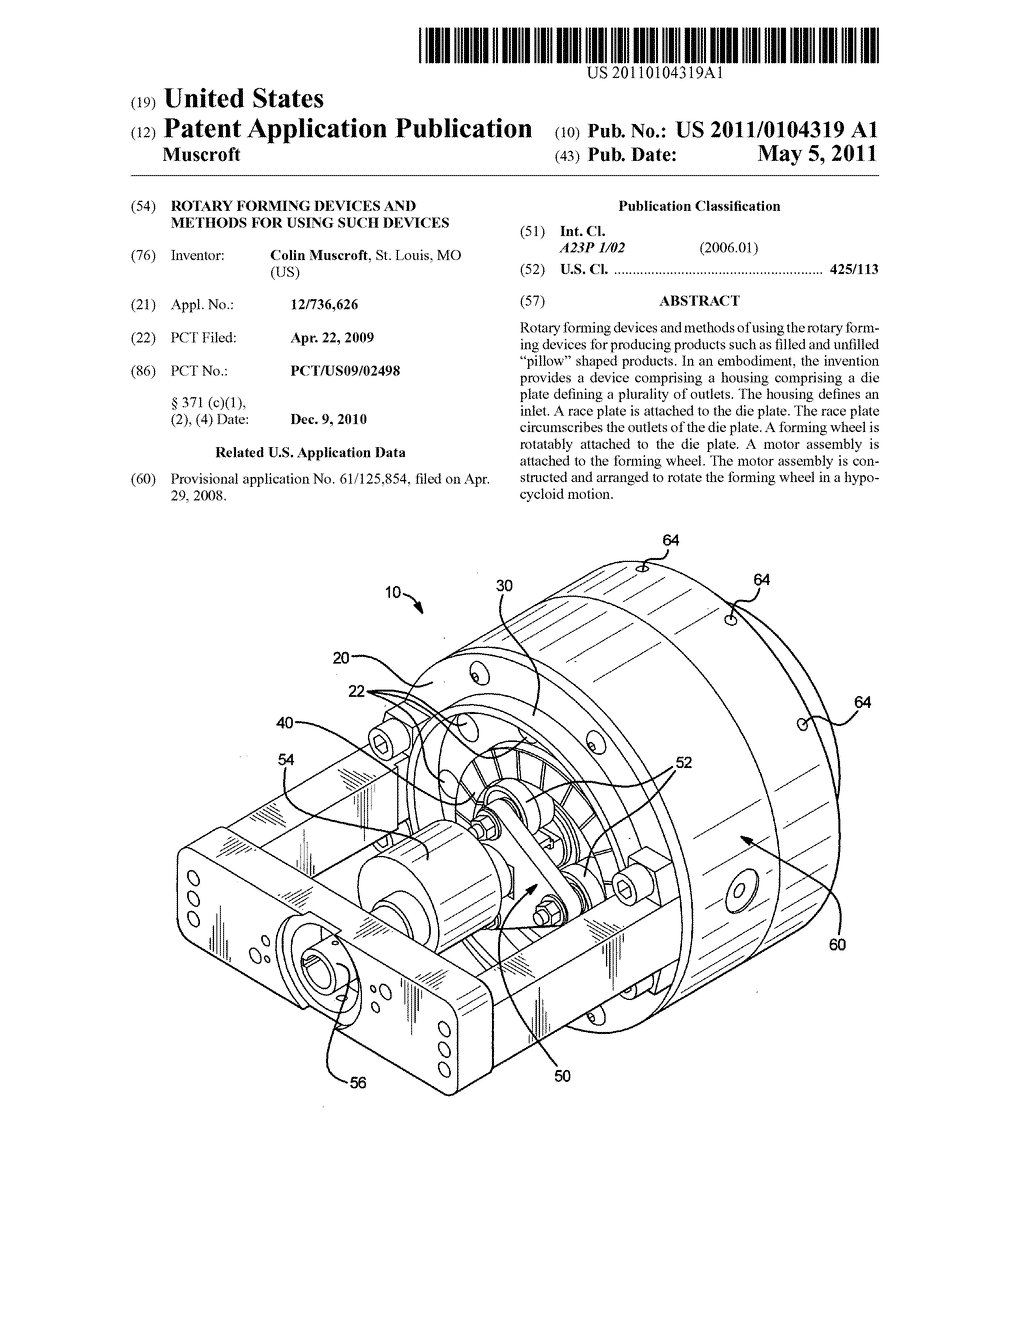 ROTARY FORMING DEVICES AND METHODS FOR USING SUCH DEVICES - diagram, schematic, and image 01